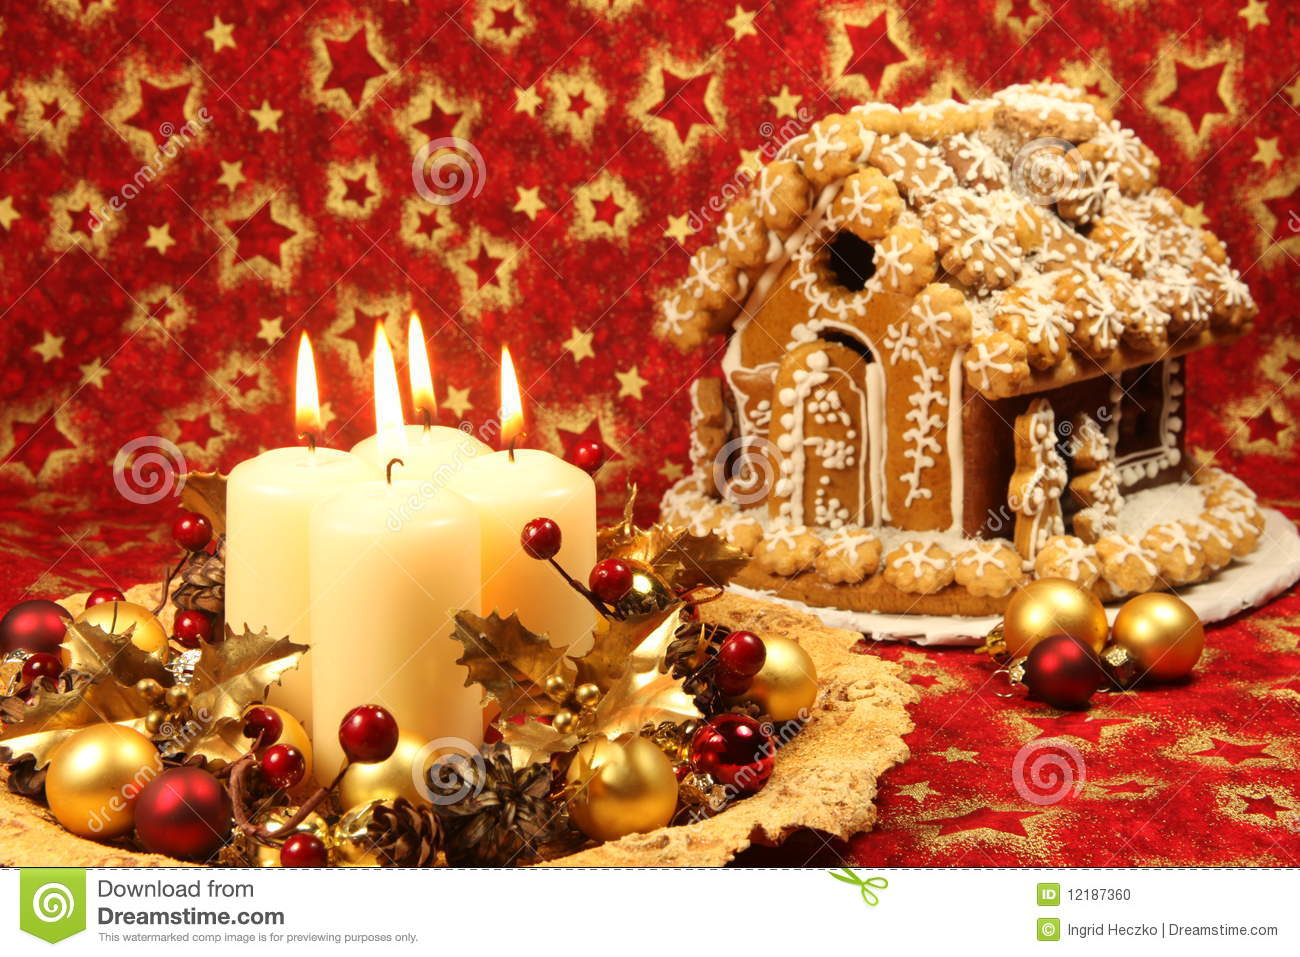 #BB8010 Christmas Decoration And Gingerbread House Stock Photo  5497 decorations de noel reine des neiges 1300x957 px @ aertt.com